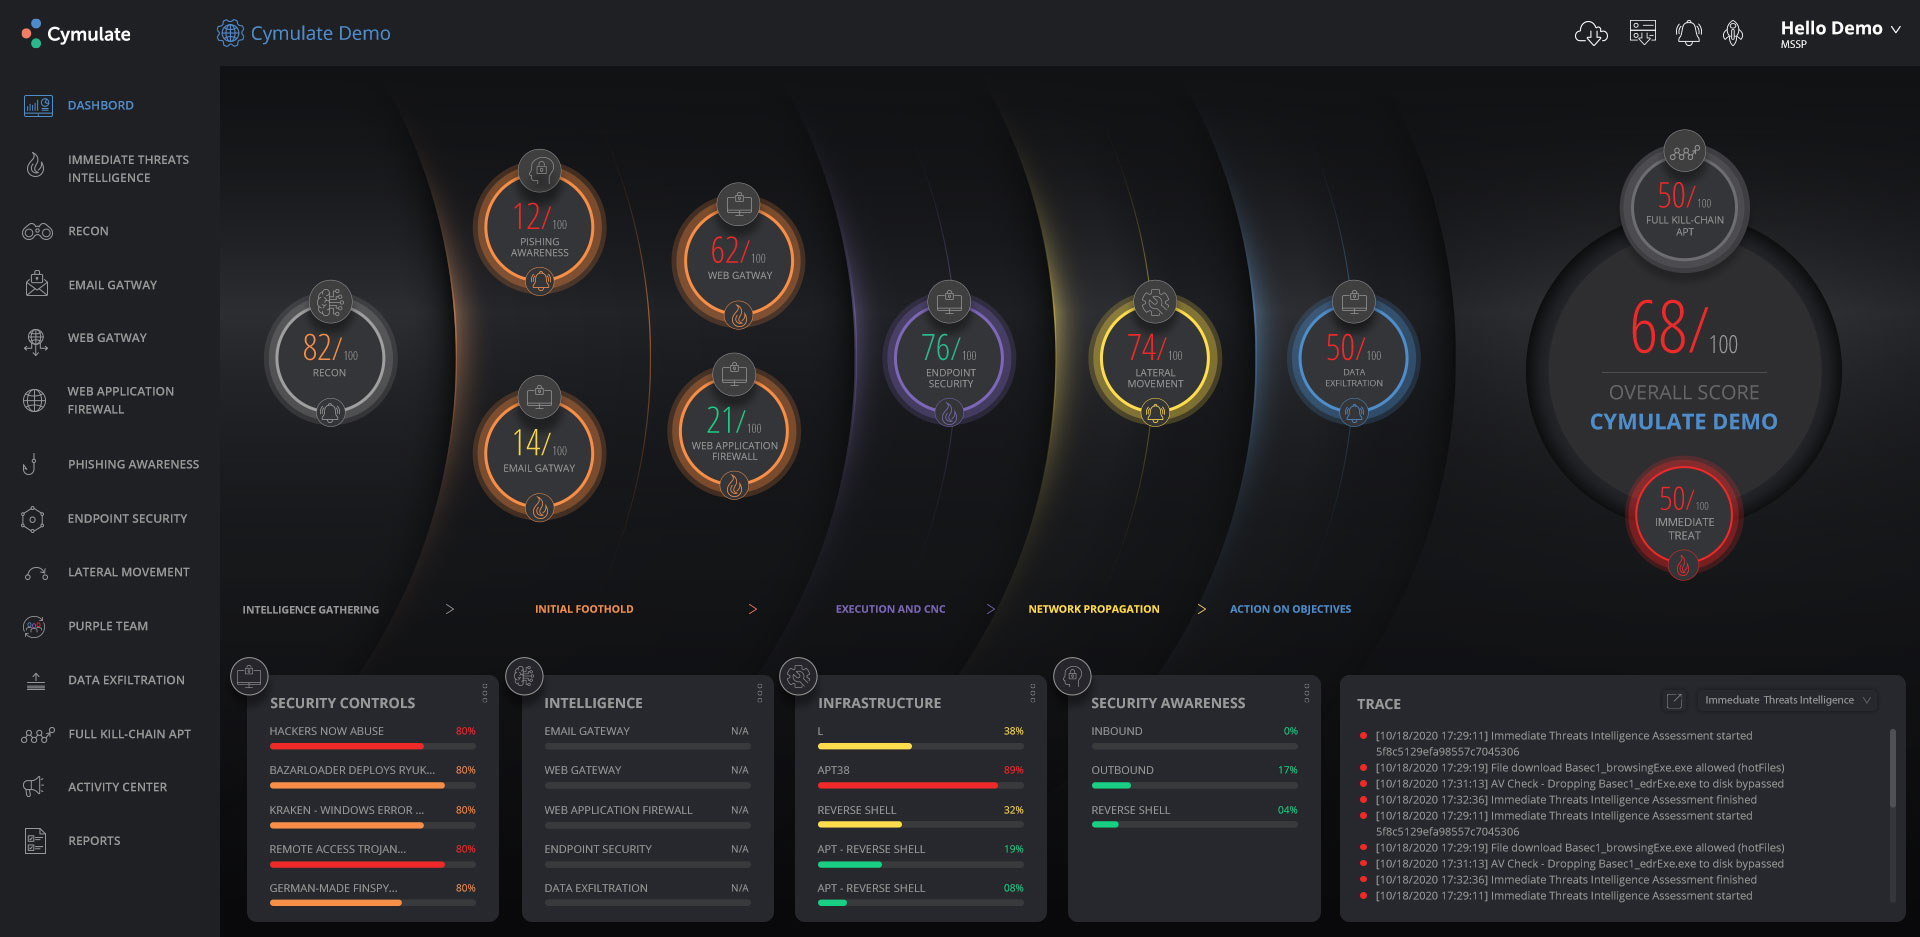 Cymulate Security Software Dashboard